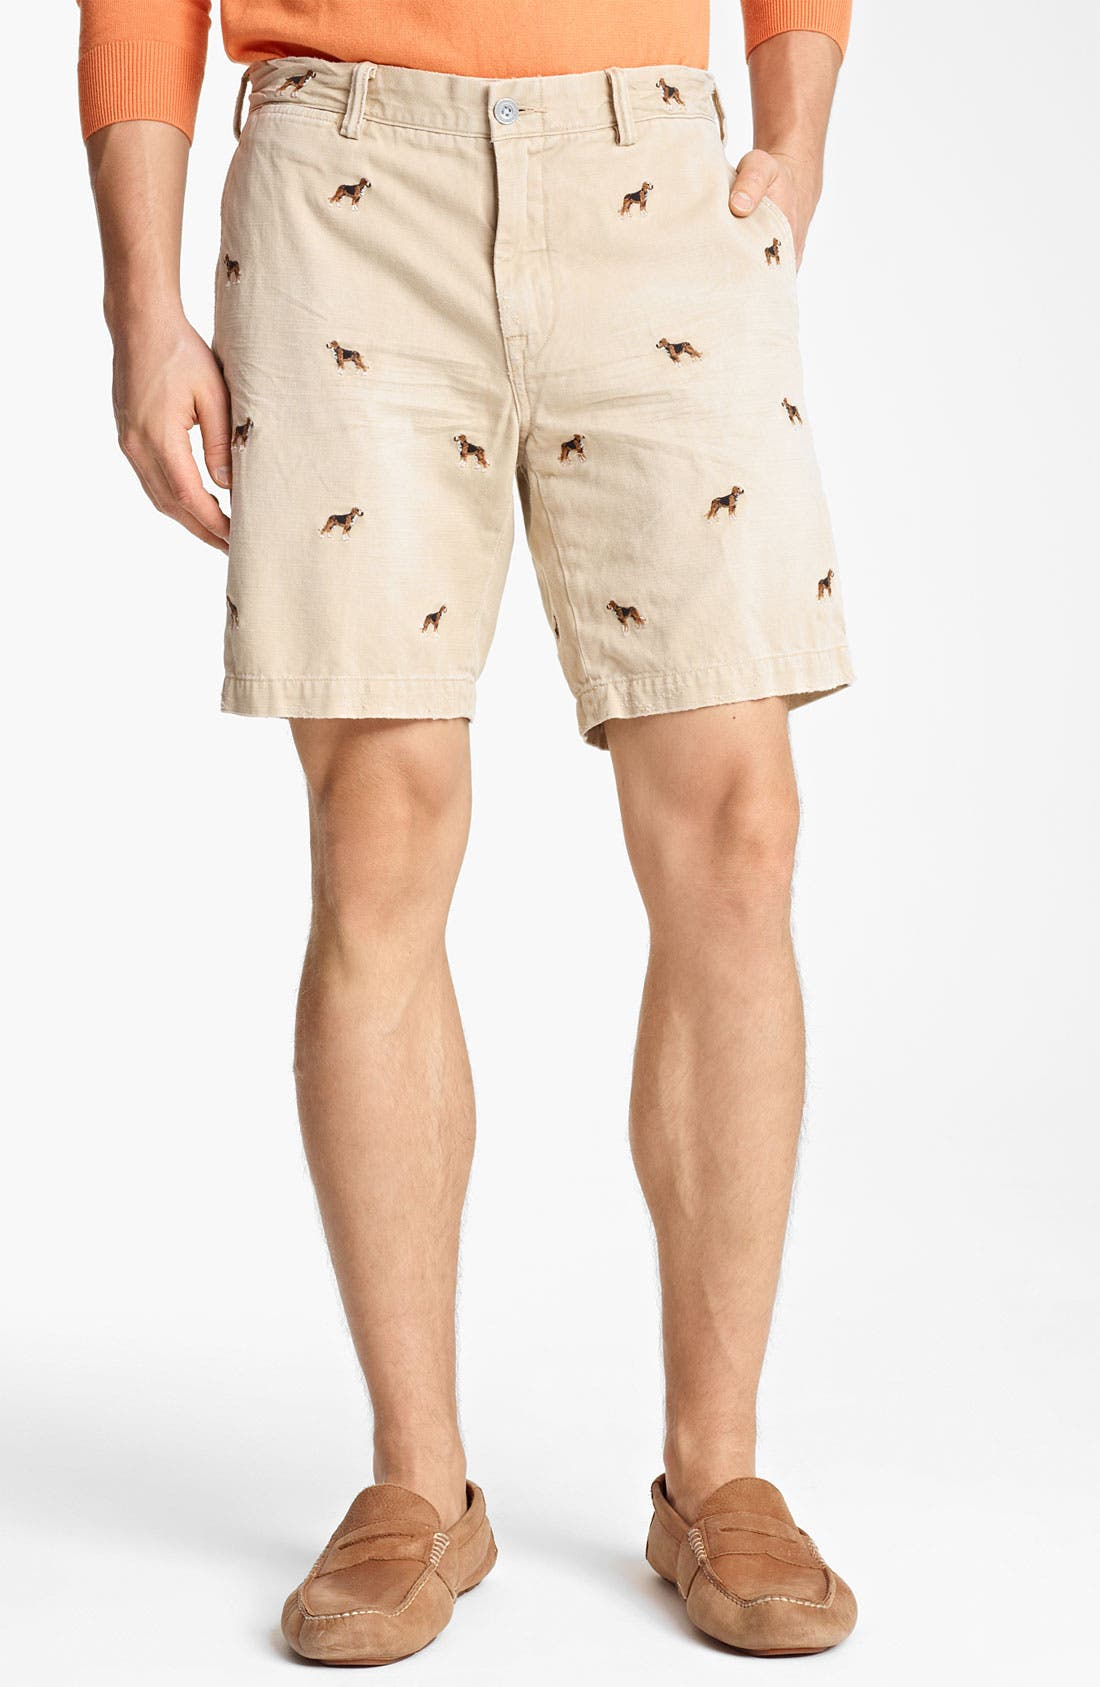 Alternate Image 1 Selected - Polo Ralph Lauren 'Maritime Beagle' Chino Shorts